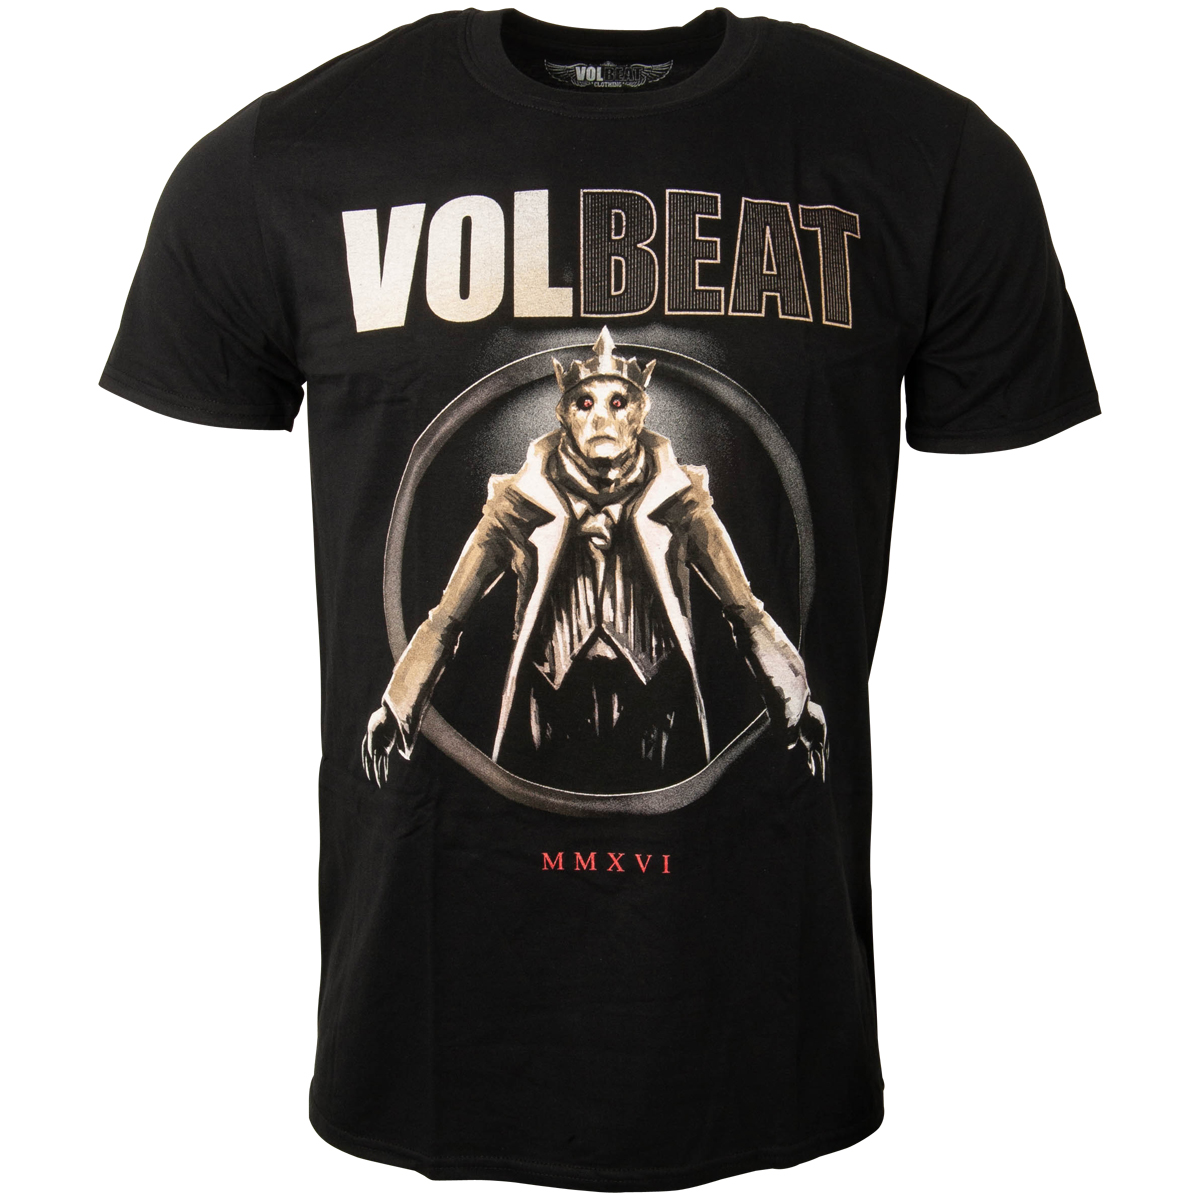 Volbeat - T-Shirt King Of The Beast - schwarz